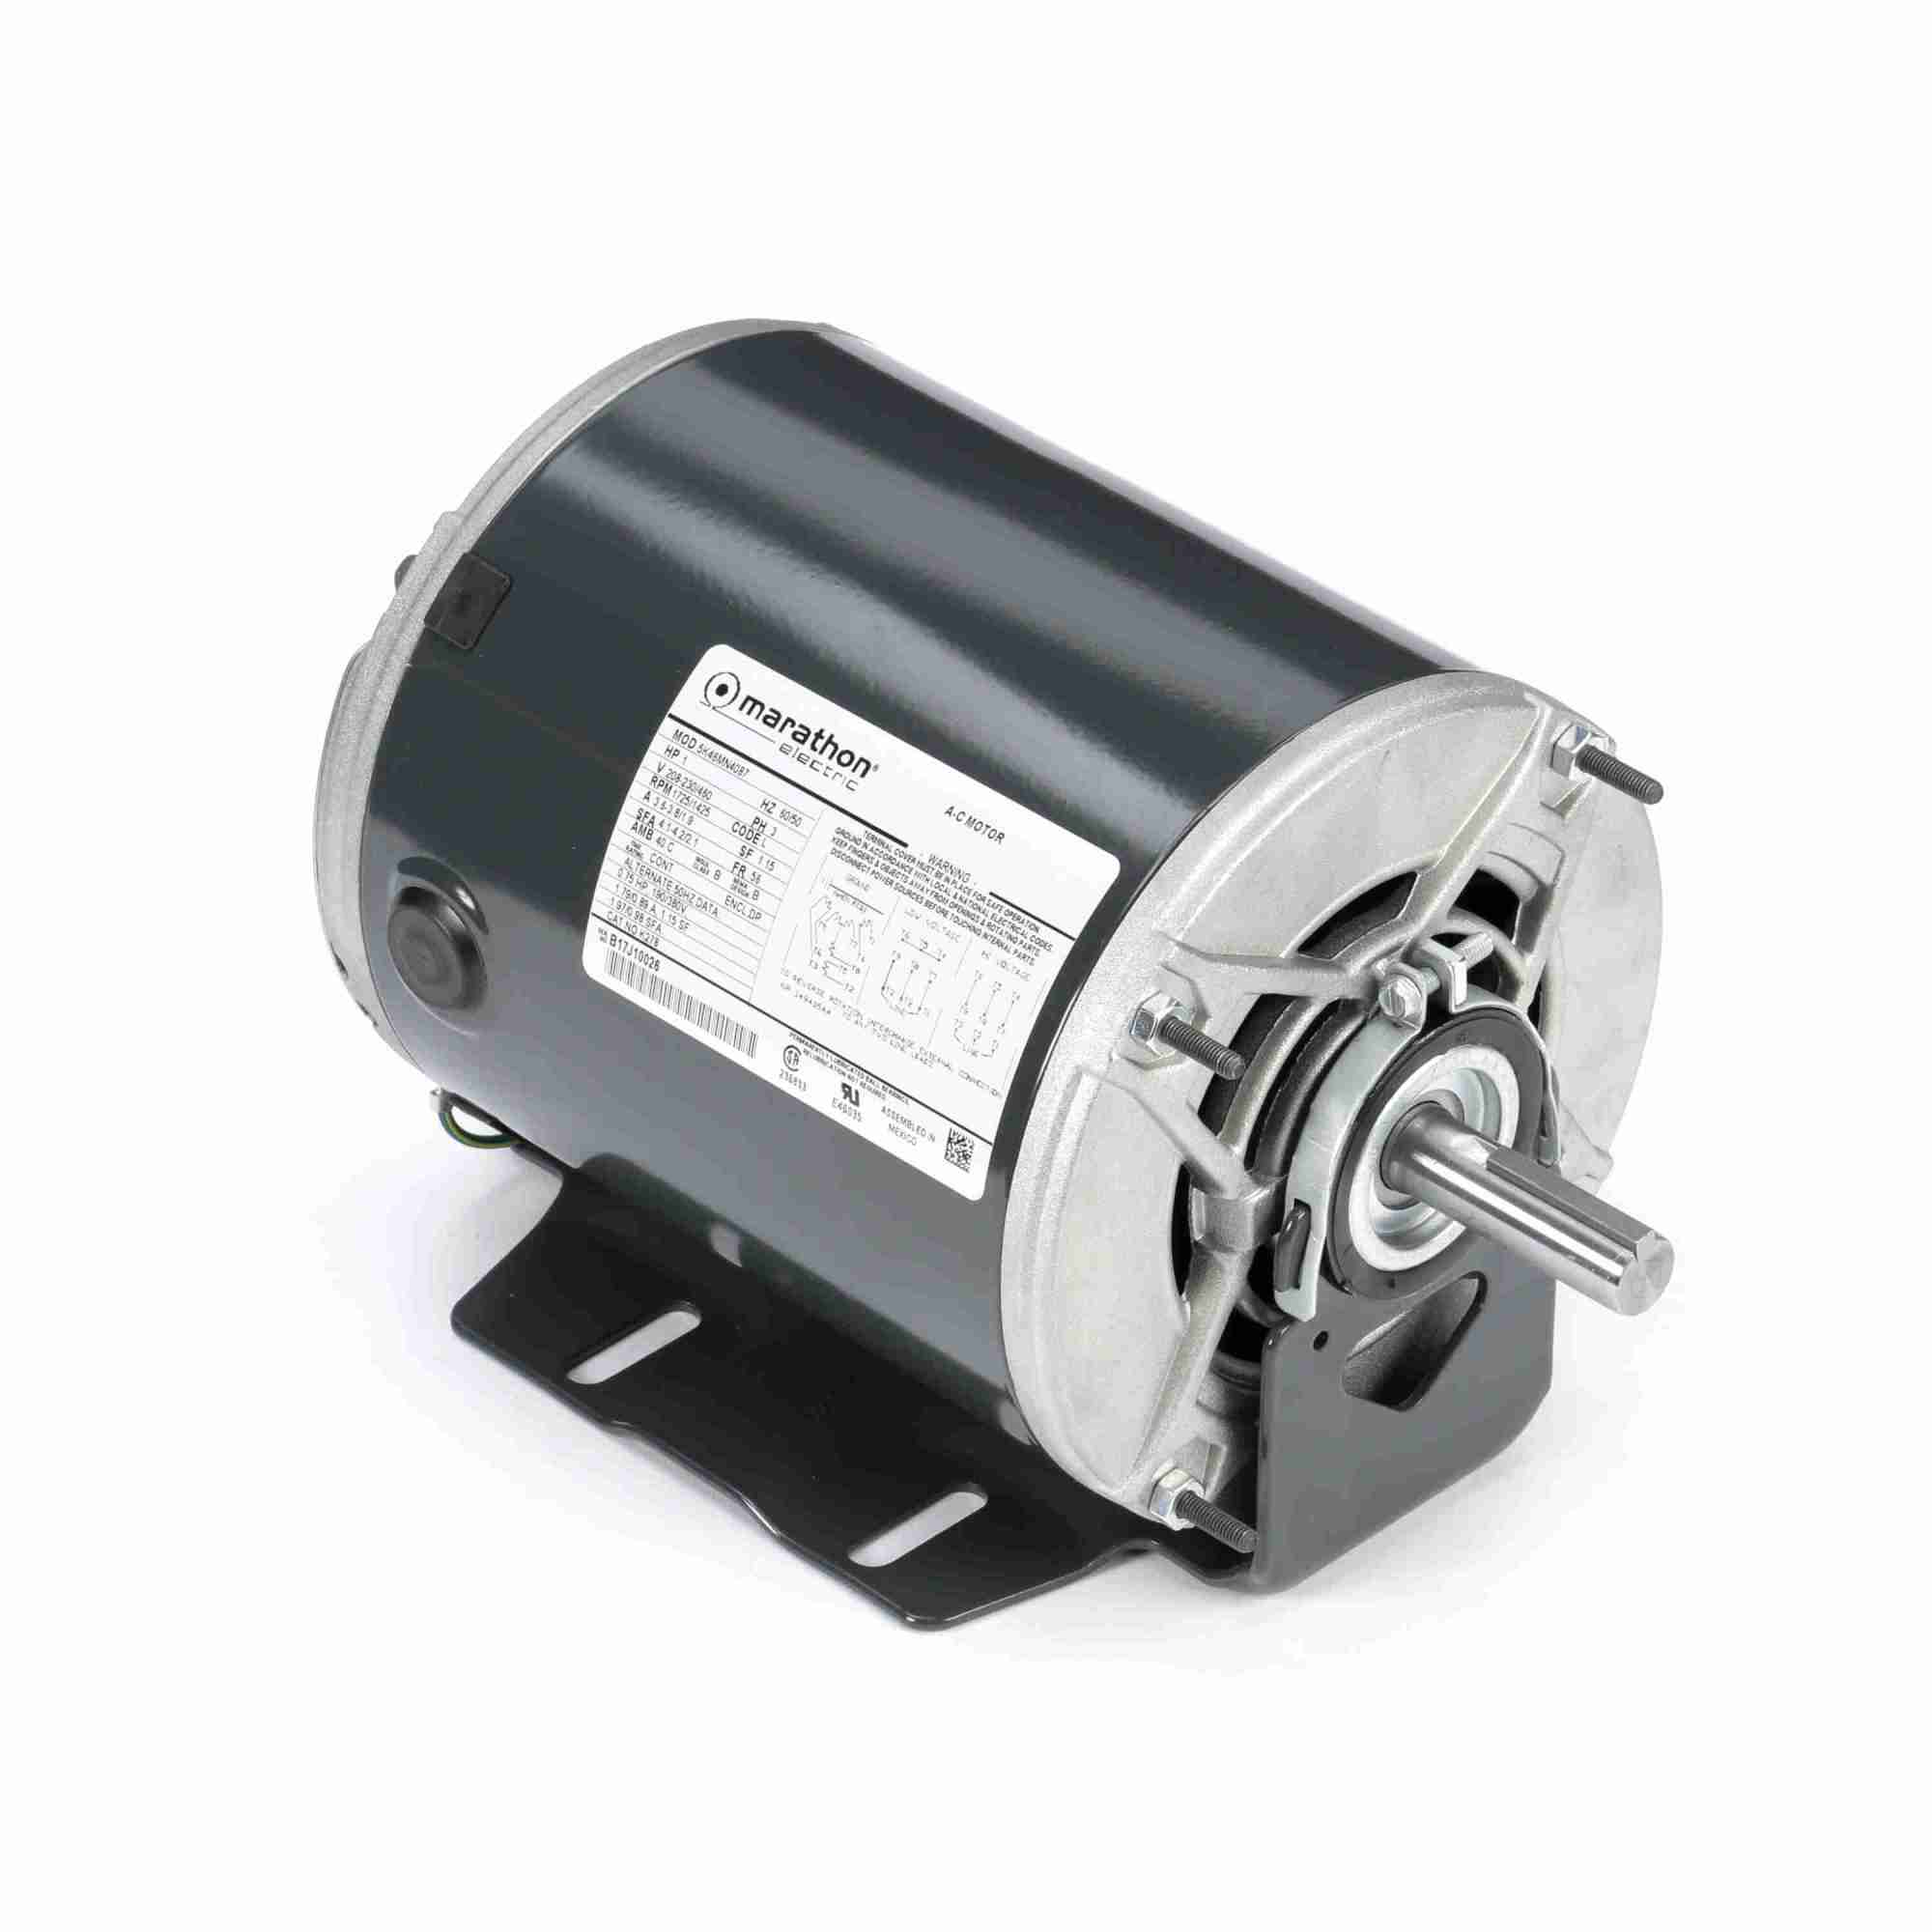 hight resolution of 304853 greenheck replacement motor all around industry supply 115 230 volts 60 cycles 1725 rpm diagram parts list for model